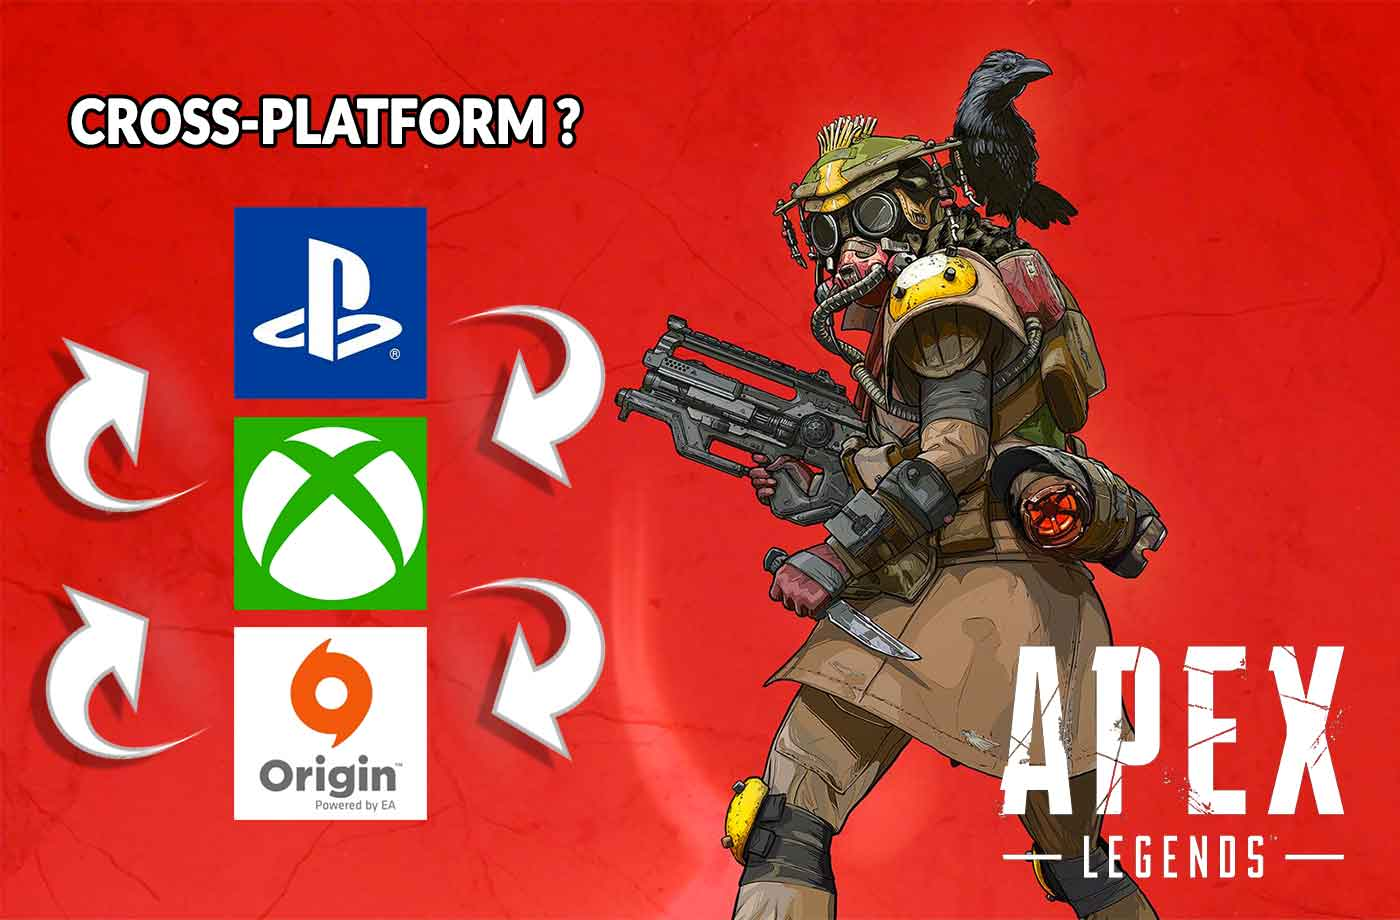 Cross-play on Apex Legends how to play between PC, PS4 and